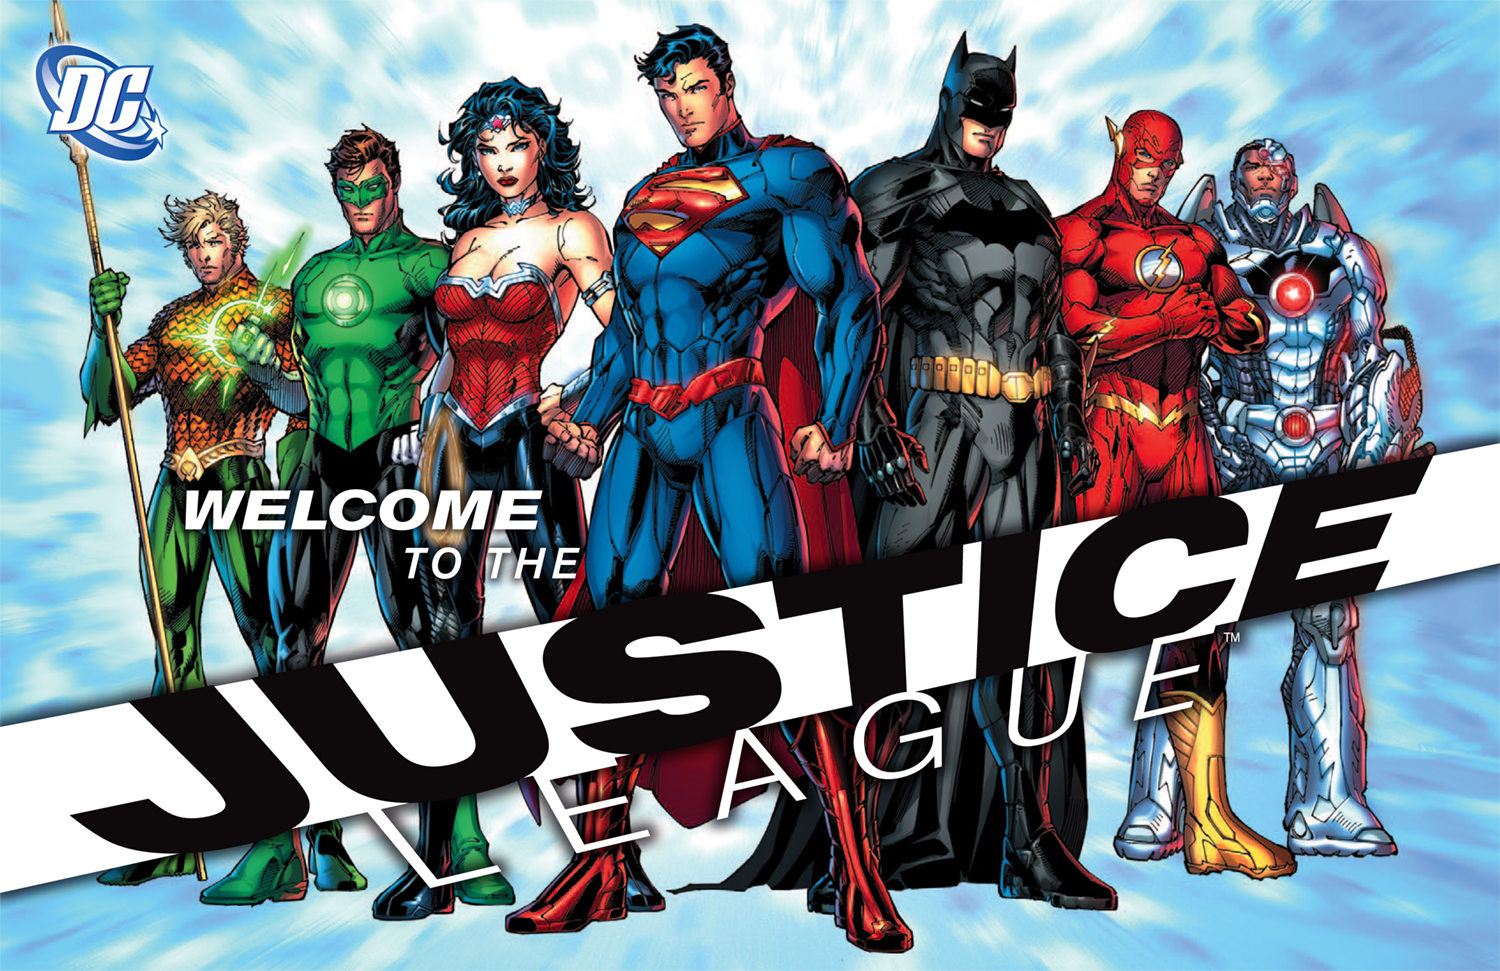 Warner Bros. officialise le film Justice League